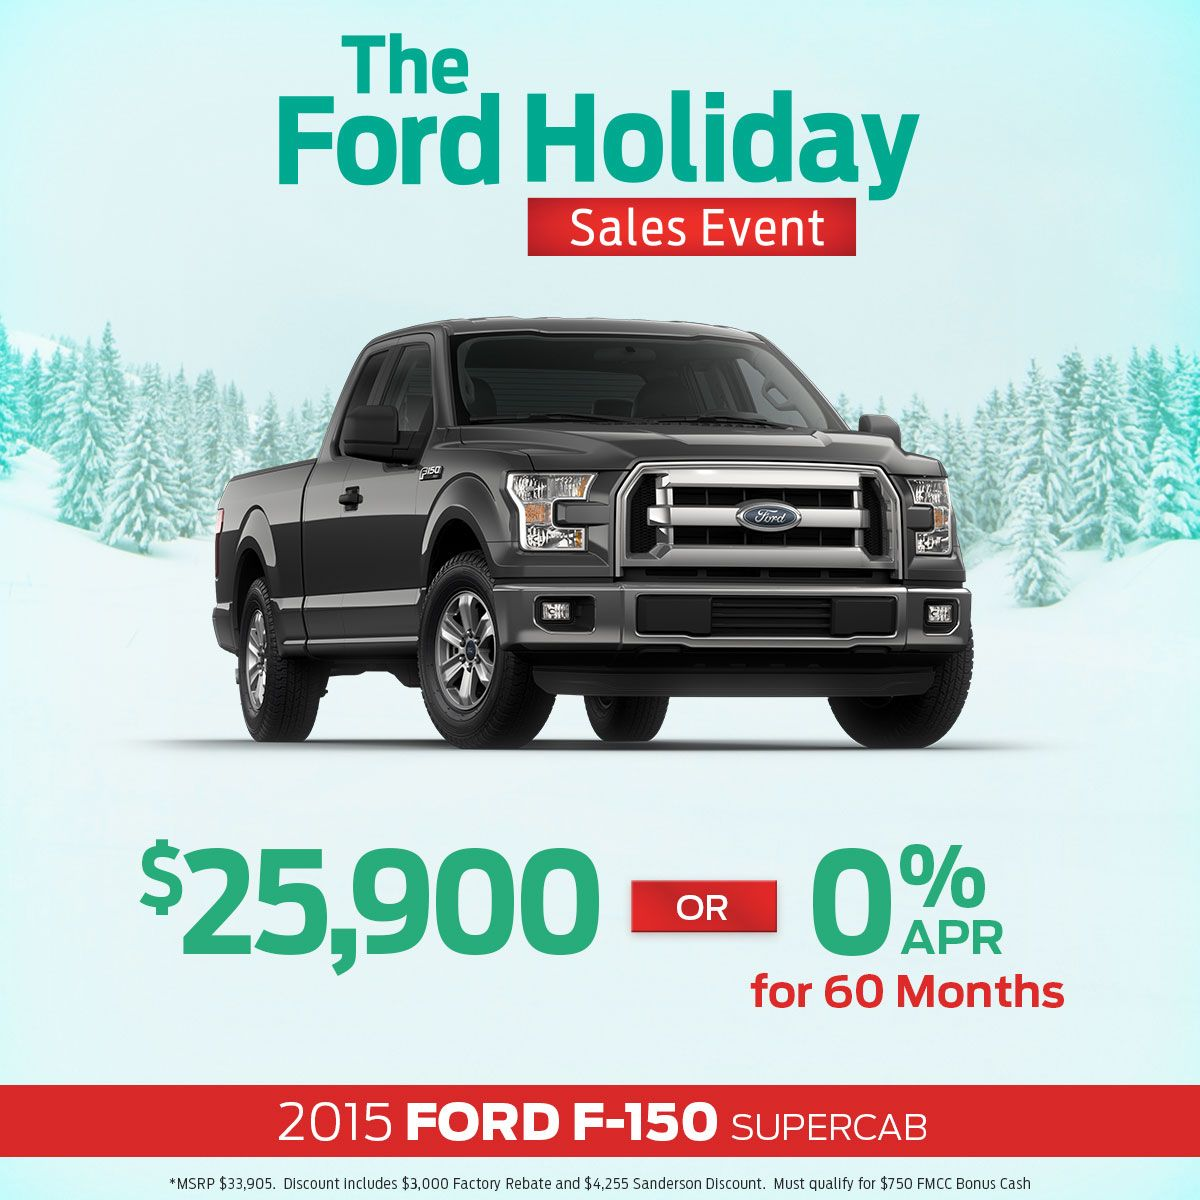 Looking For Great Holiday Deals On New Ford Vehicles Come To